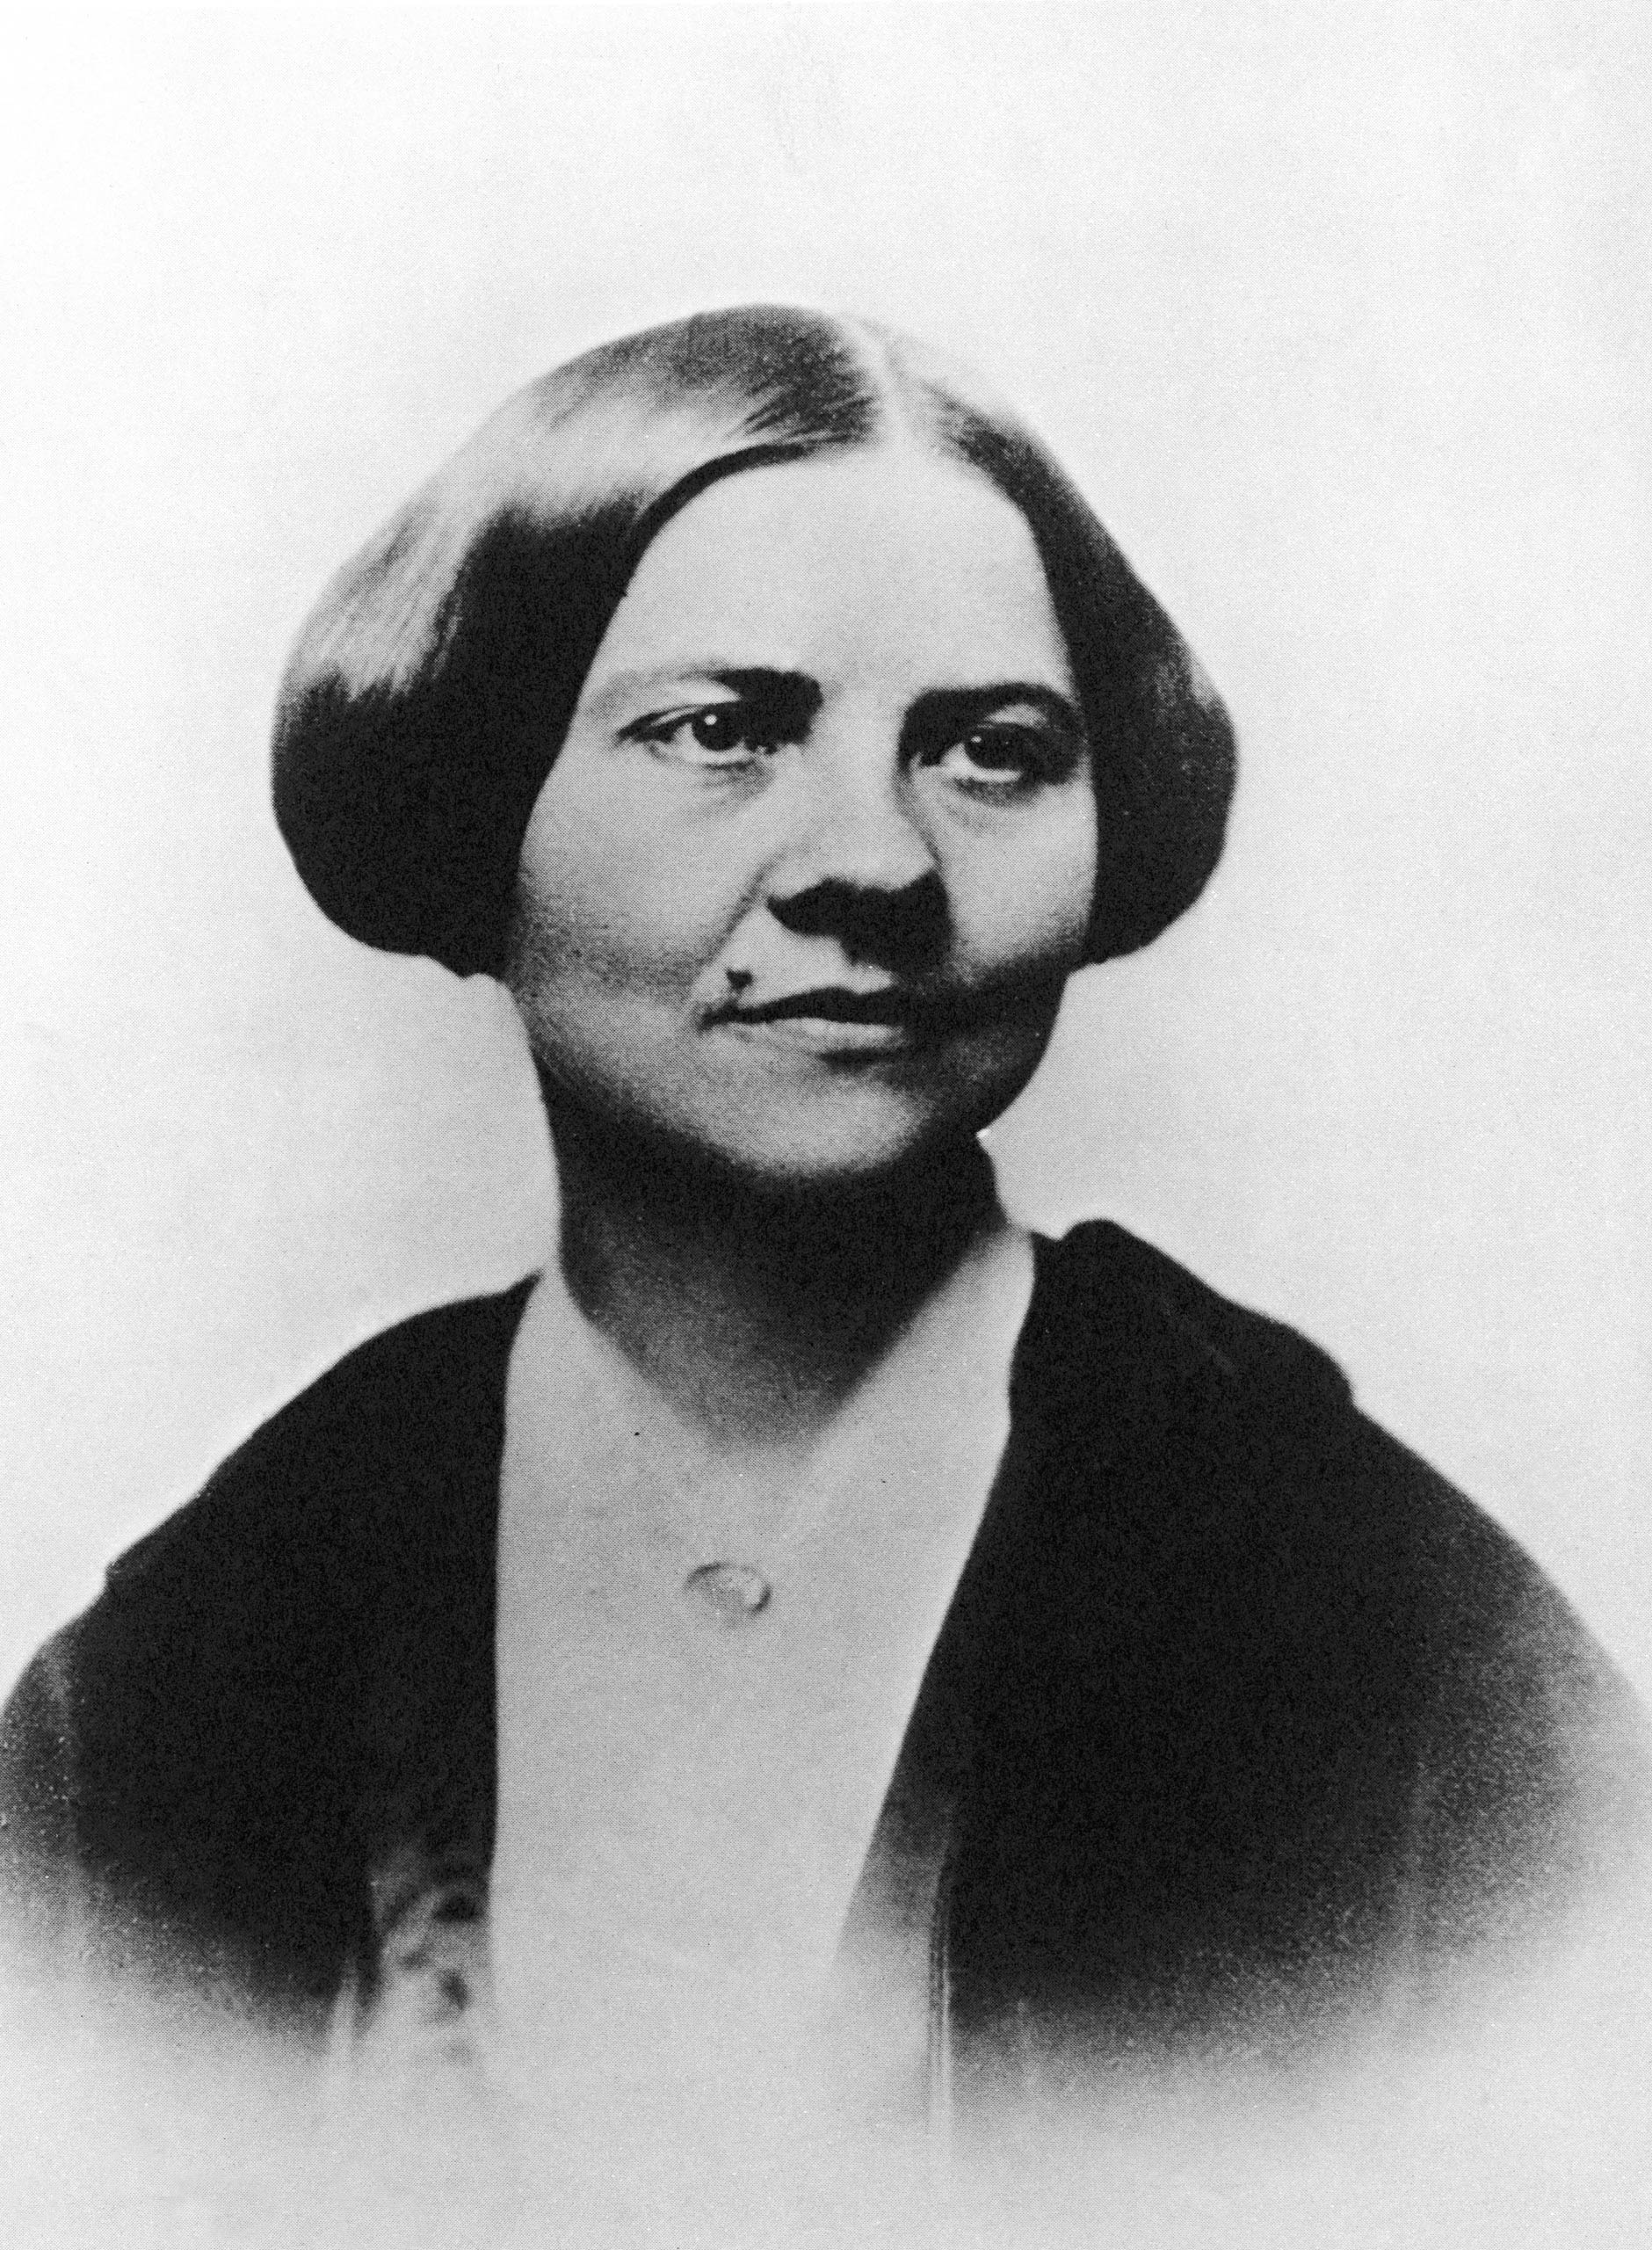 Portrait of American abolitionist and women's rights activist Lucy Stone.